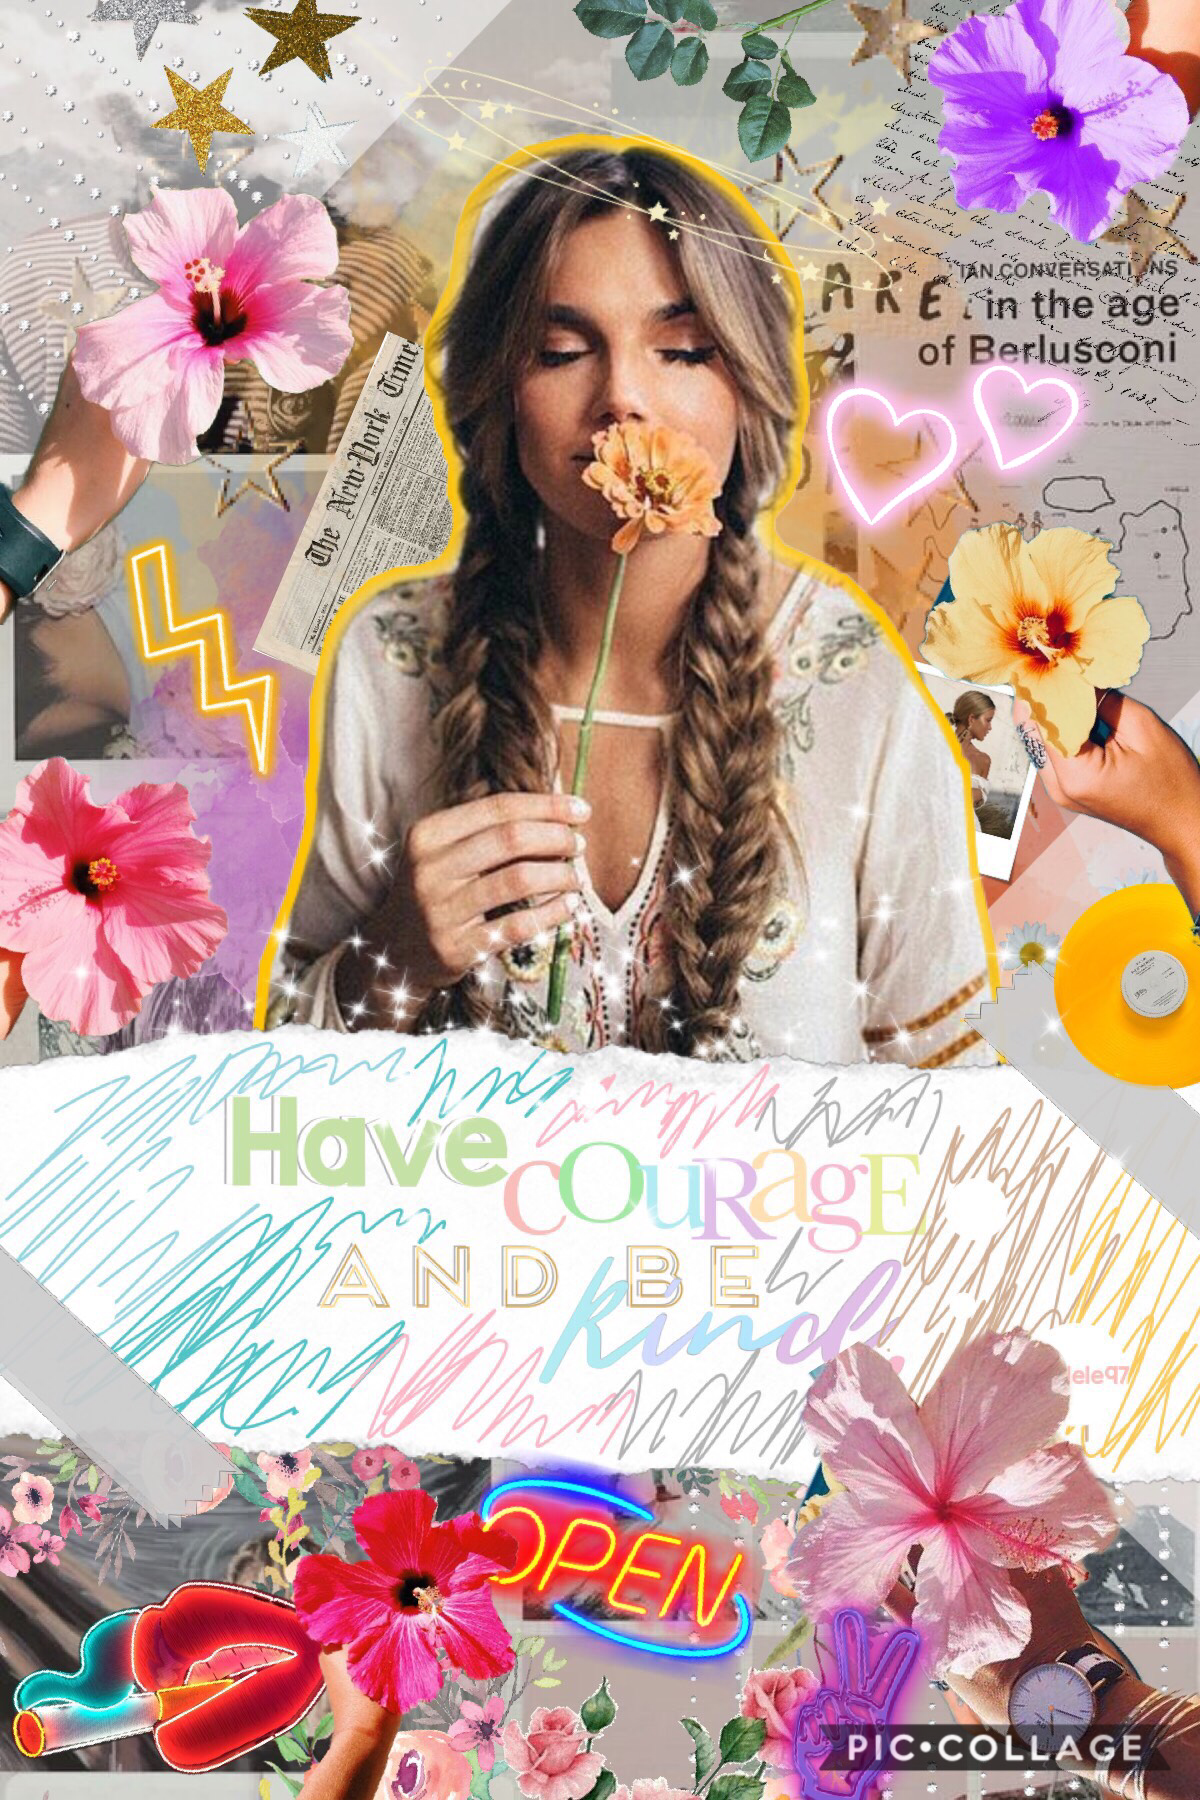 🌸✨t a p p y☀️🌈 2.23.19.  Yeet ✨ I hope you like this! I have to study for 3 tests this weekend oof. 😕 rate outa 10 ⭐️ dis quote is from the Cinderella Live Action movie 🎥 that I just watched again ♥️✨ super magical. QOTD: Fave Disney princess? AOTD: Cinde